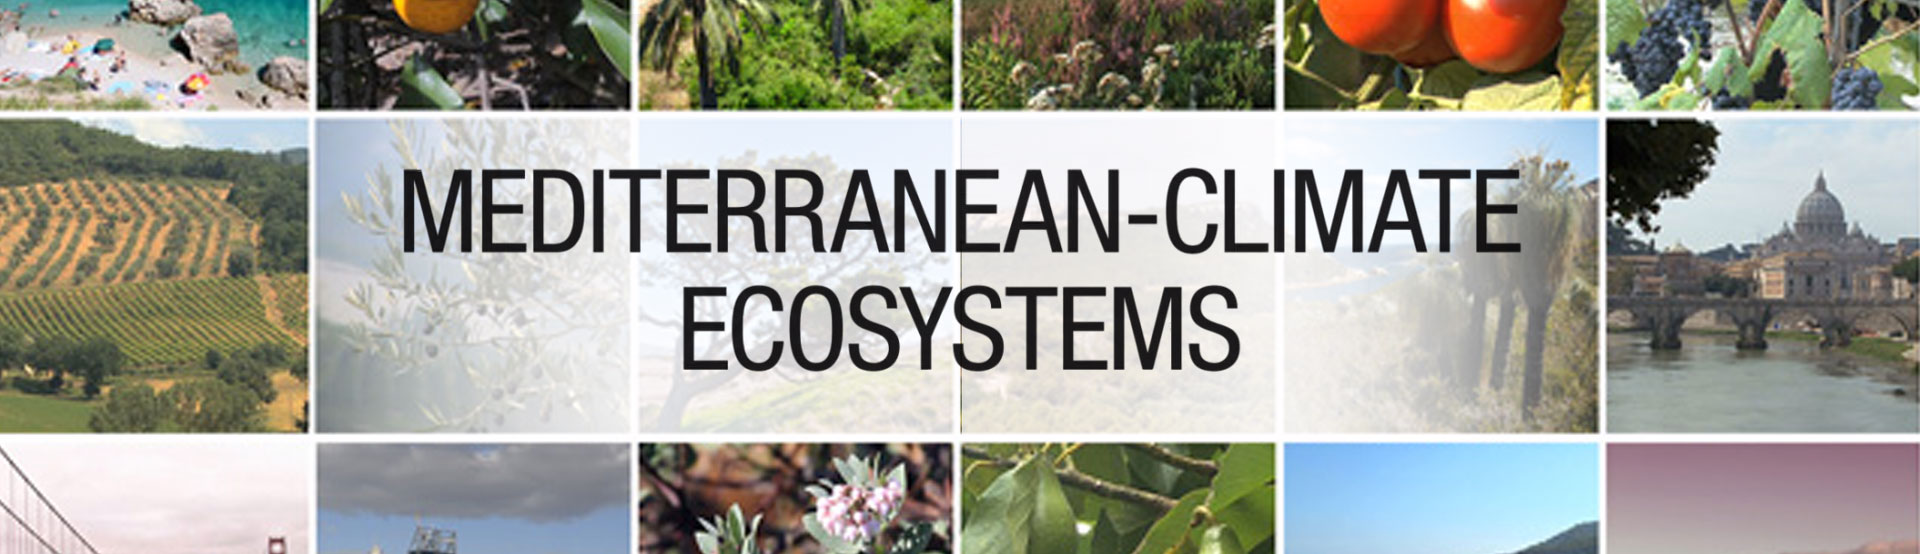 Mediterranean-Climate Ecosystems